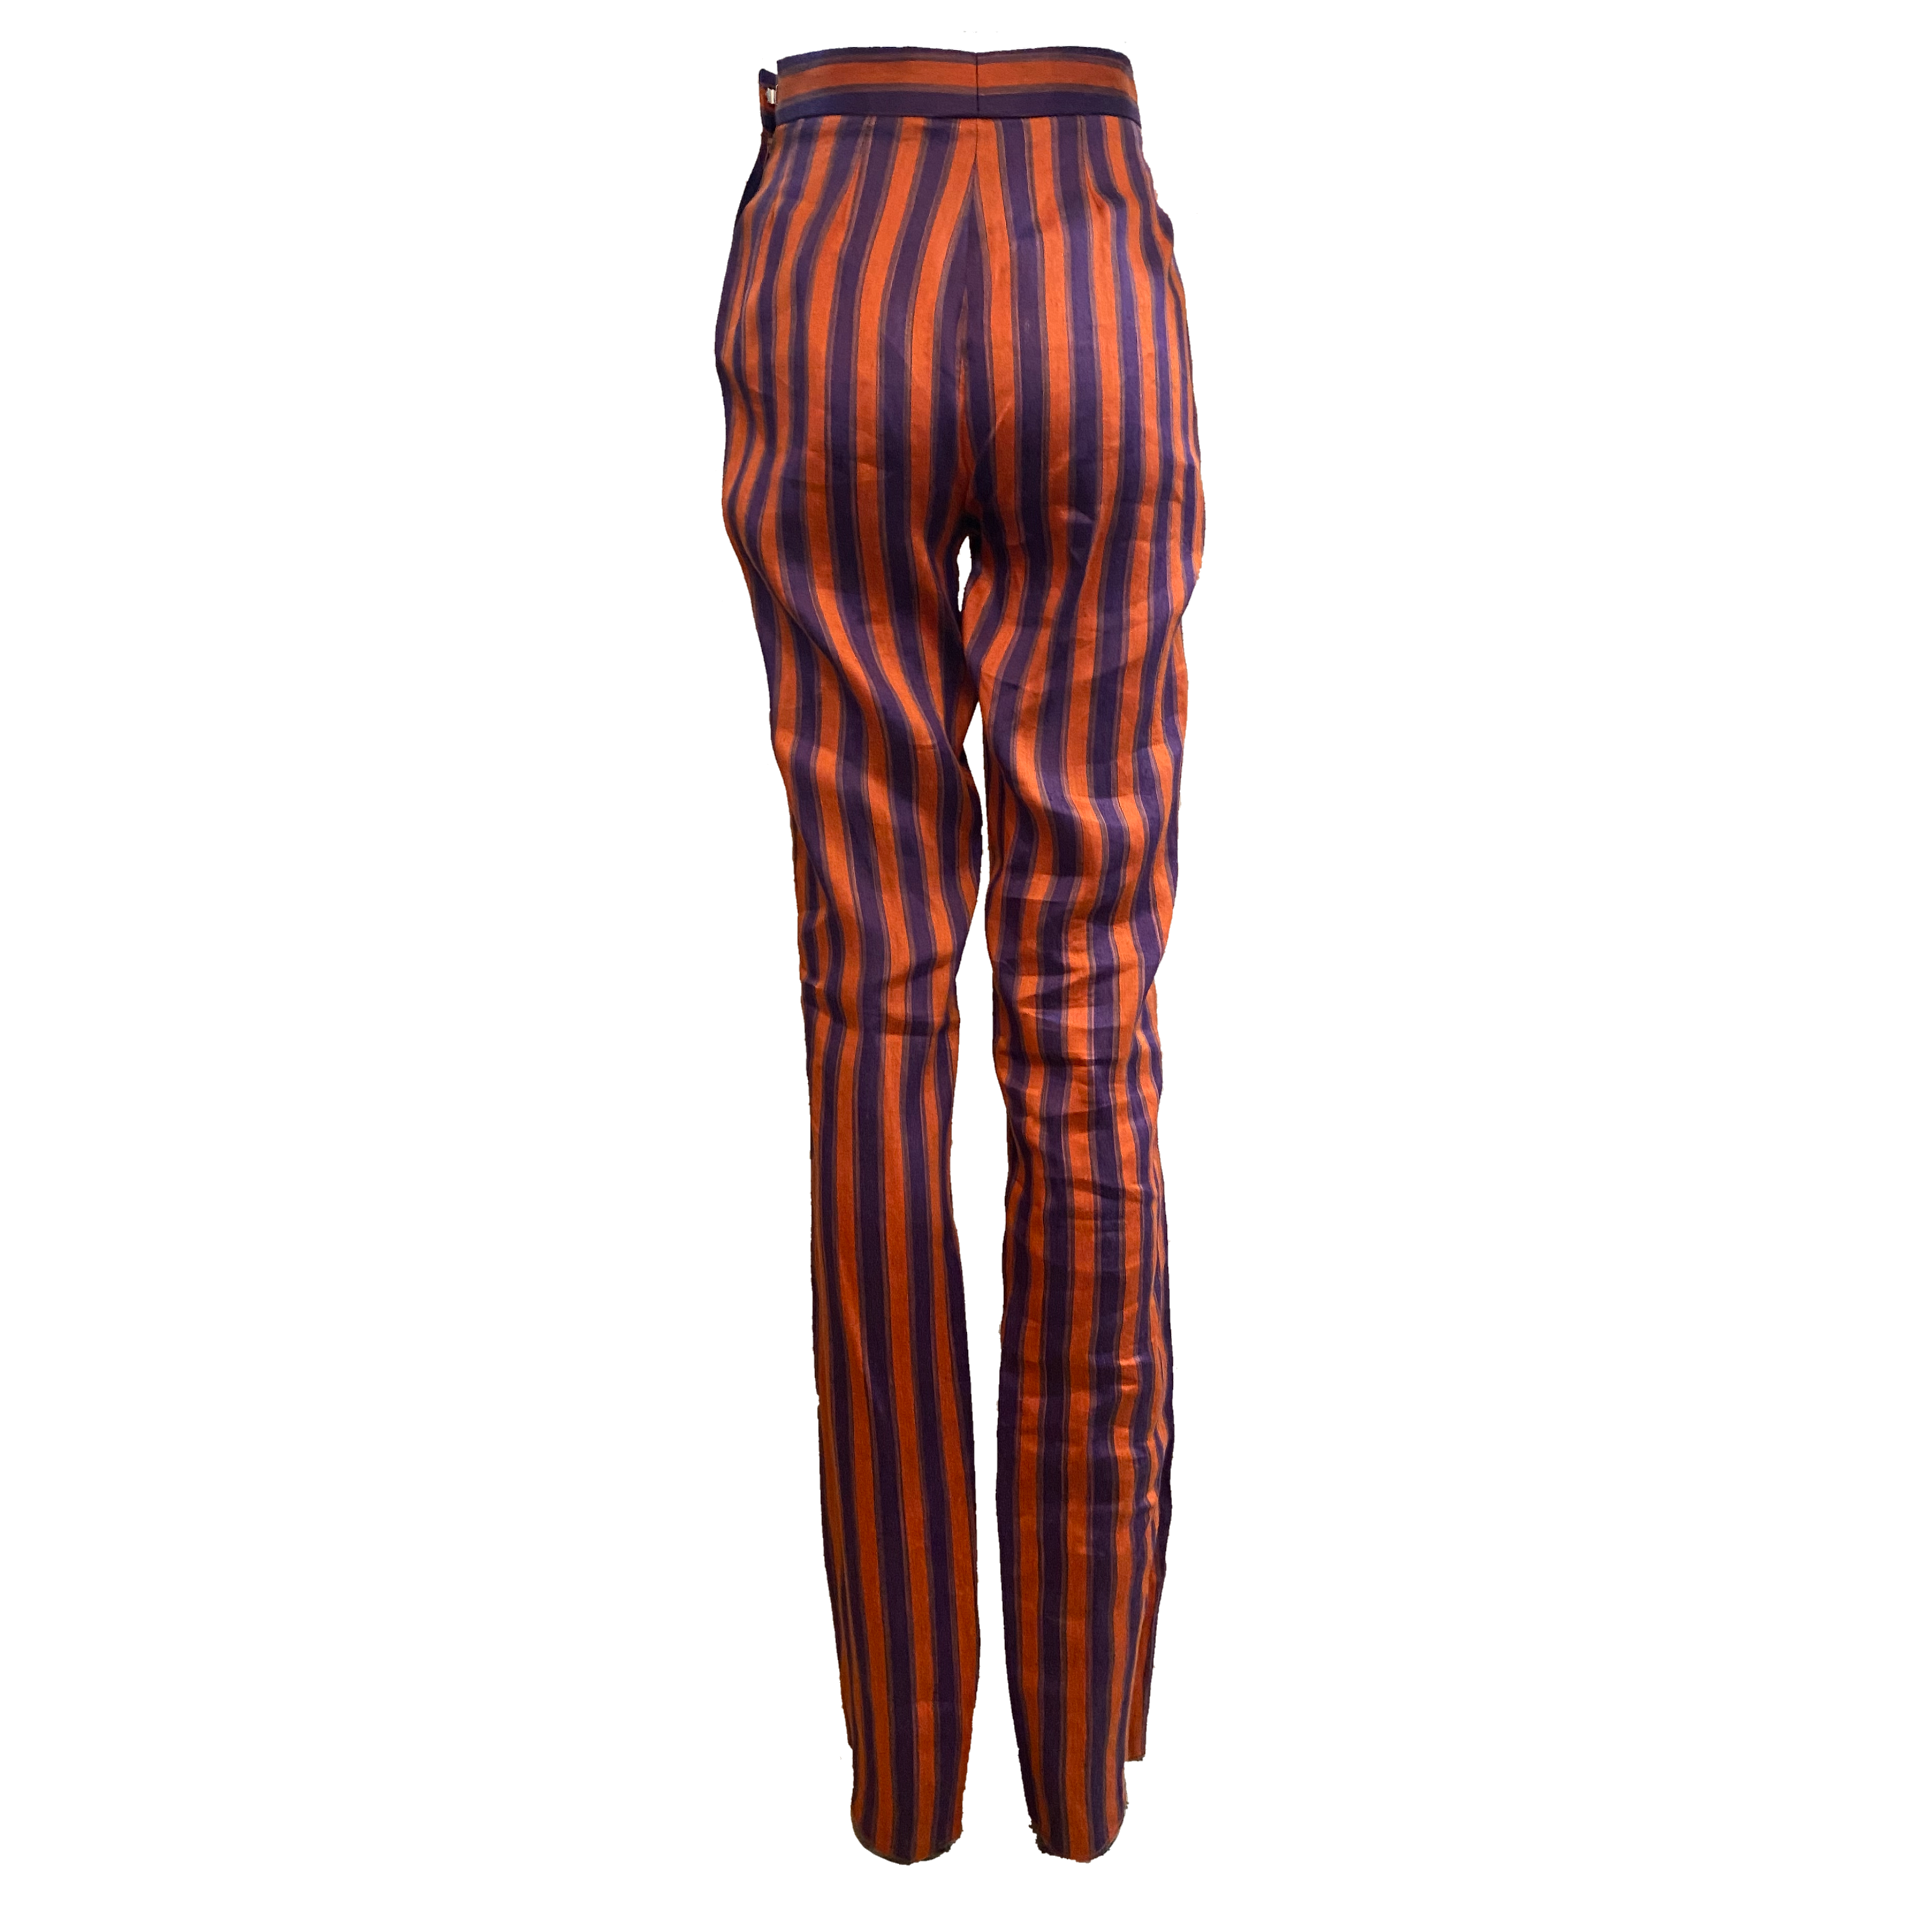 Richard Tyler 90s Striped Extra Long High Waisted Pants BACK 2 of 3